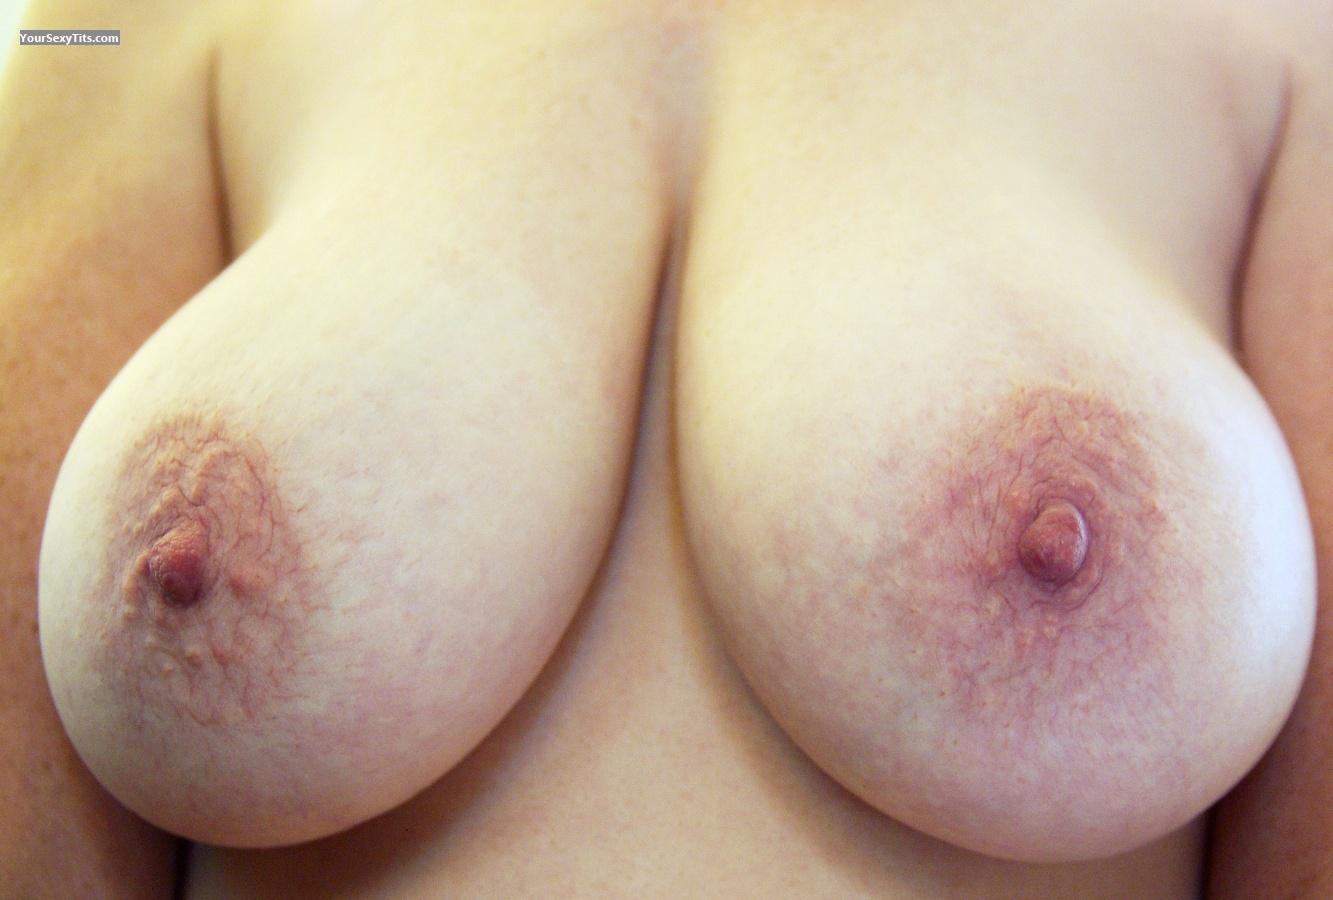 My Very big Tits Selfie by Blue36g